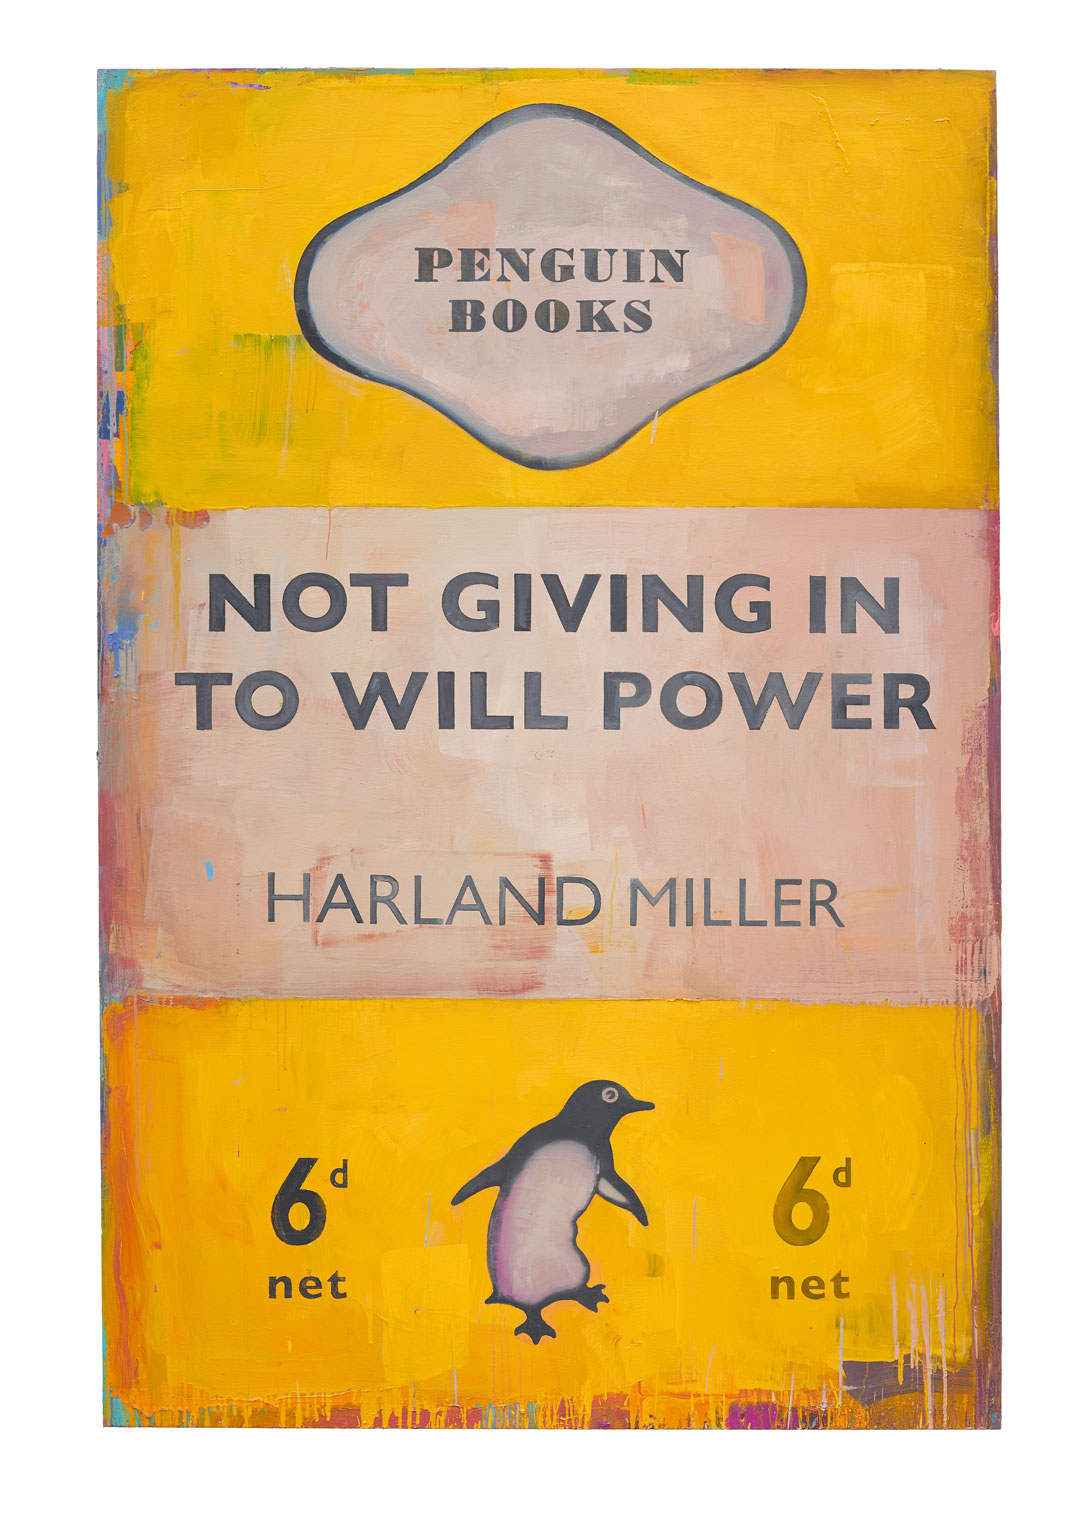 Why Harland Miller's paperbacks are like Andy's soup cans